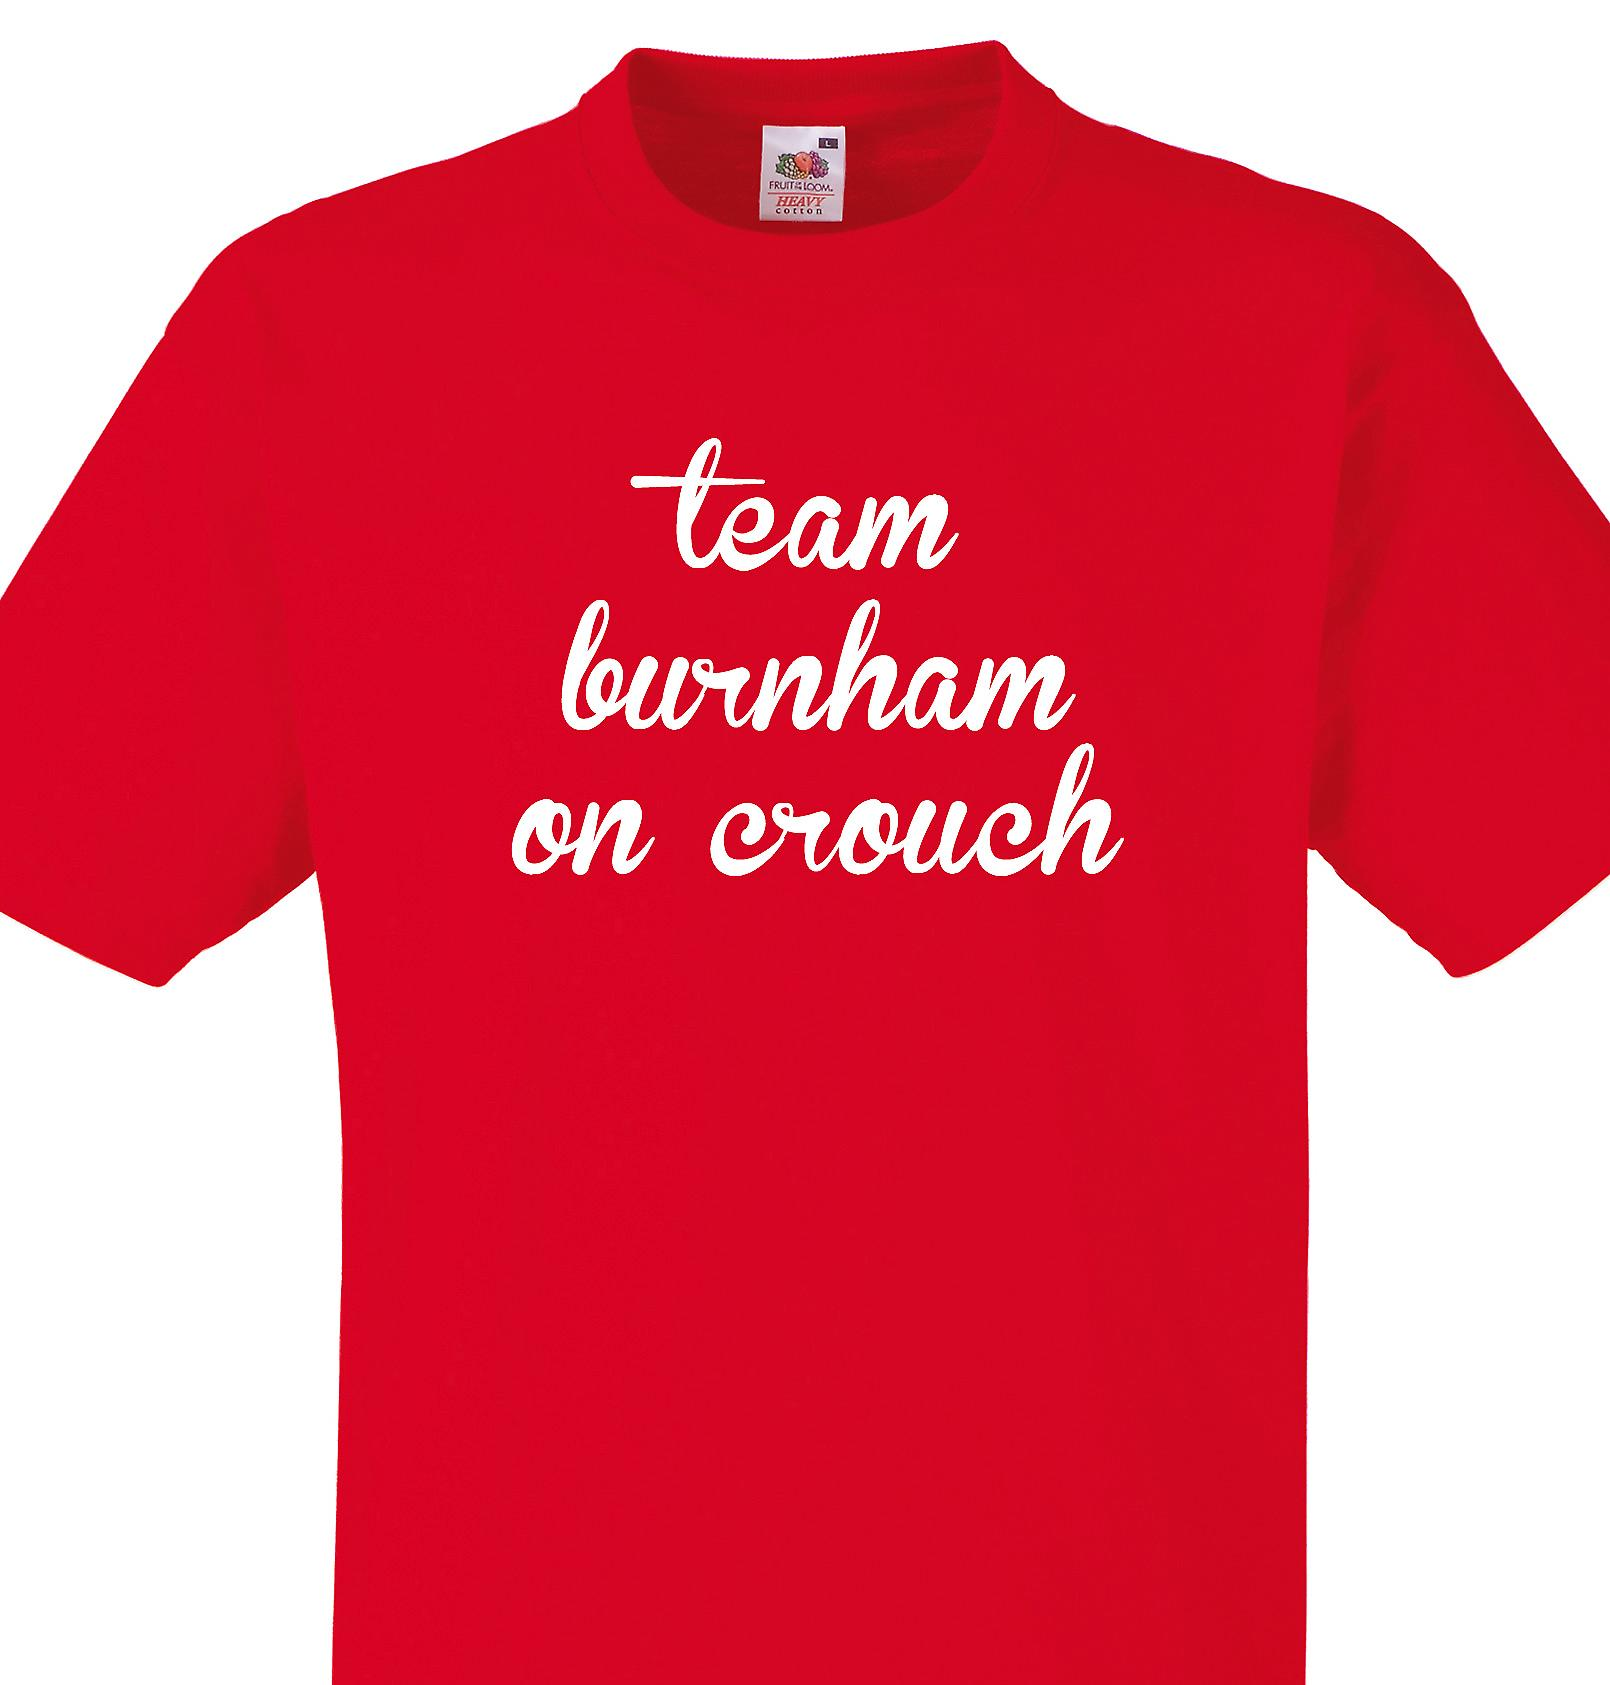 Team Burnham on crouch Red T shirt